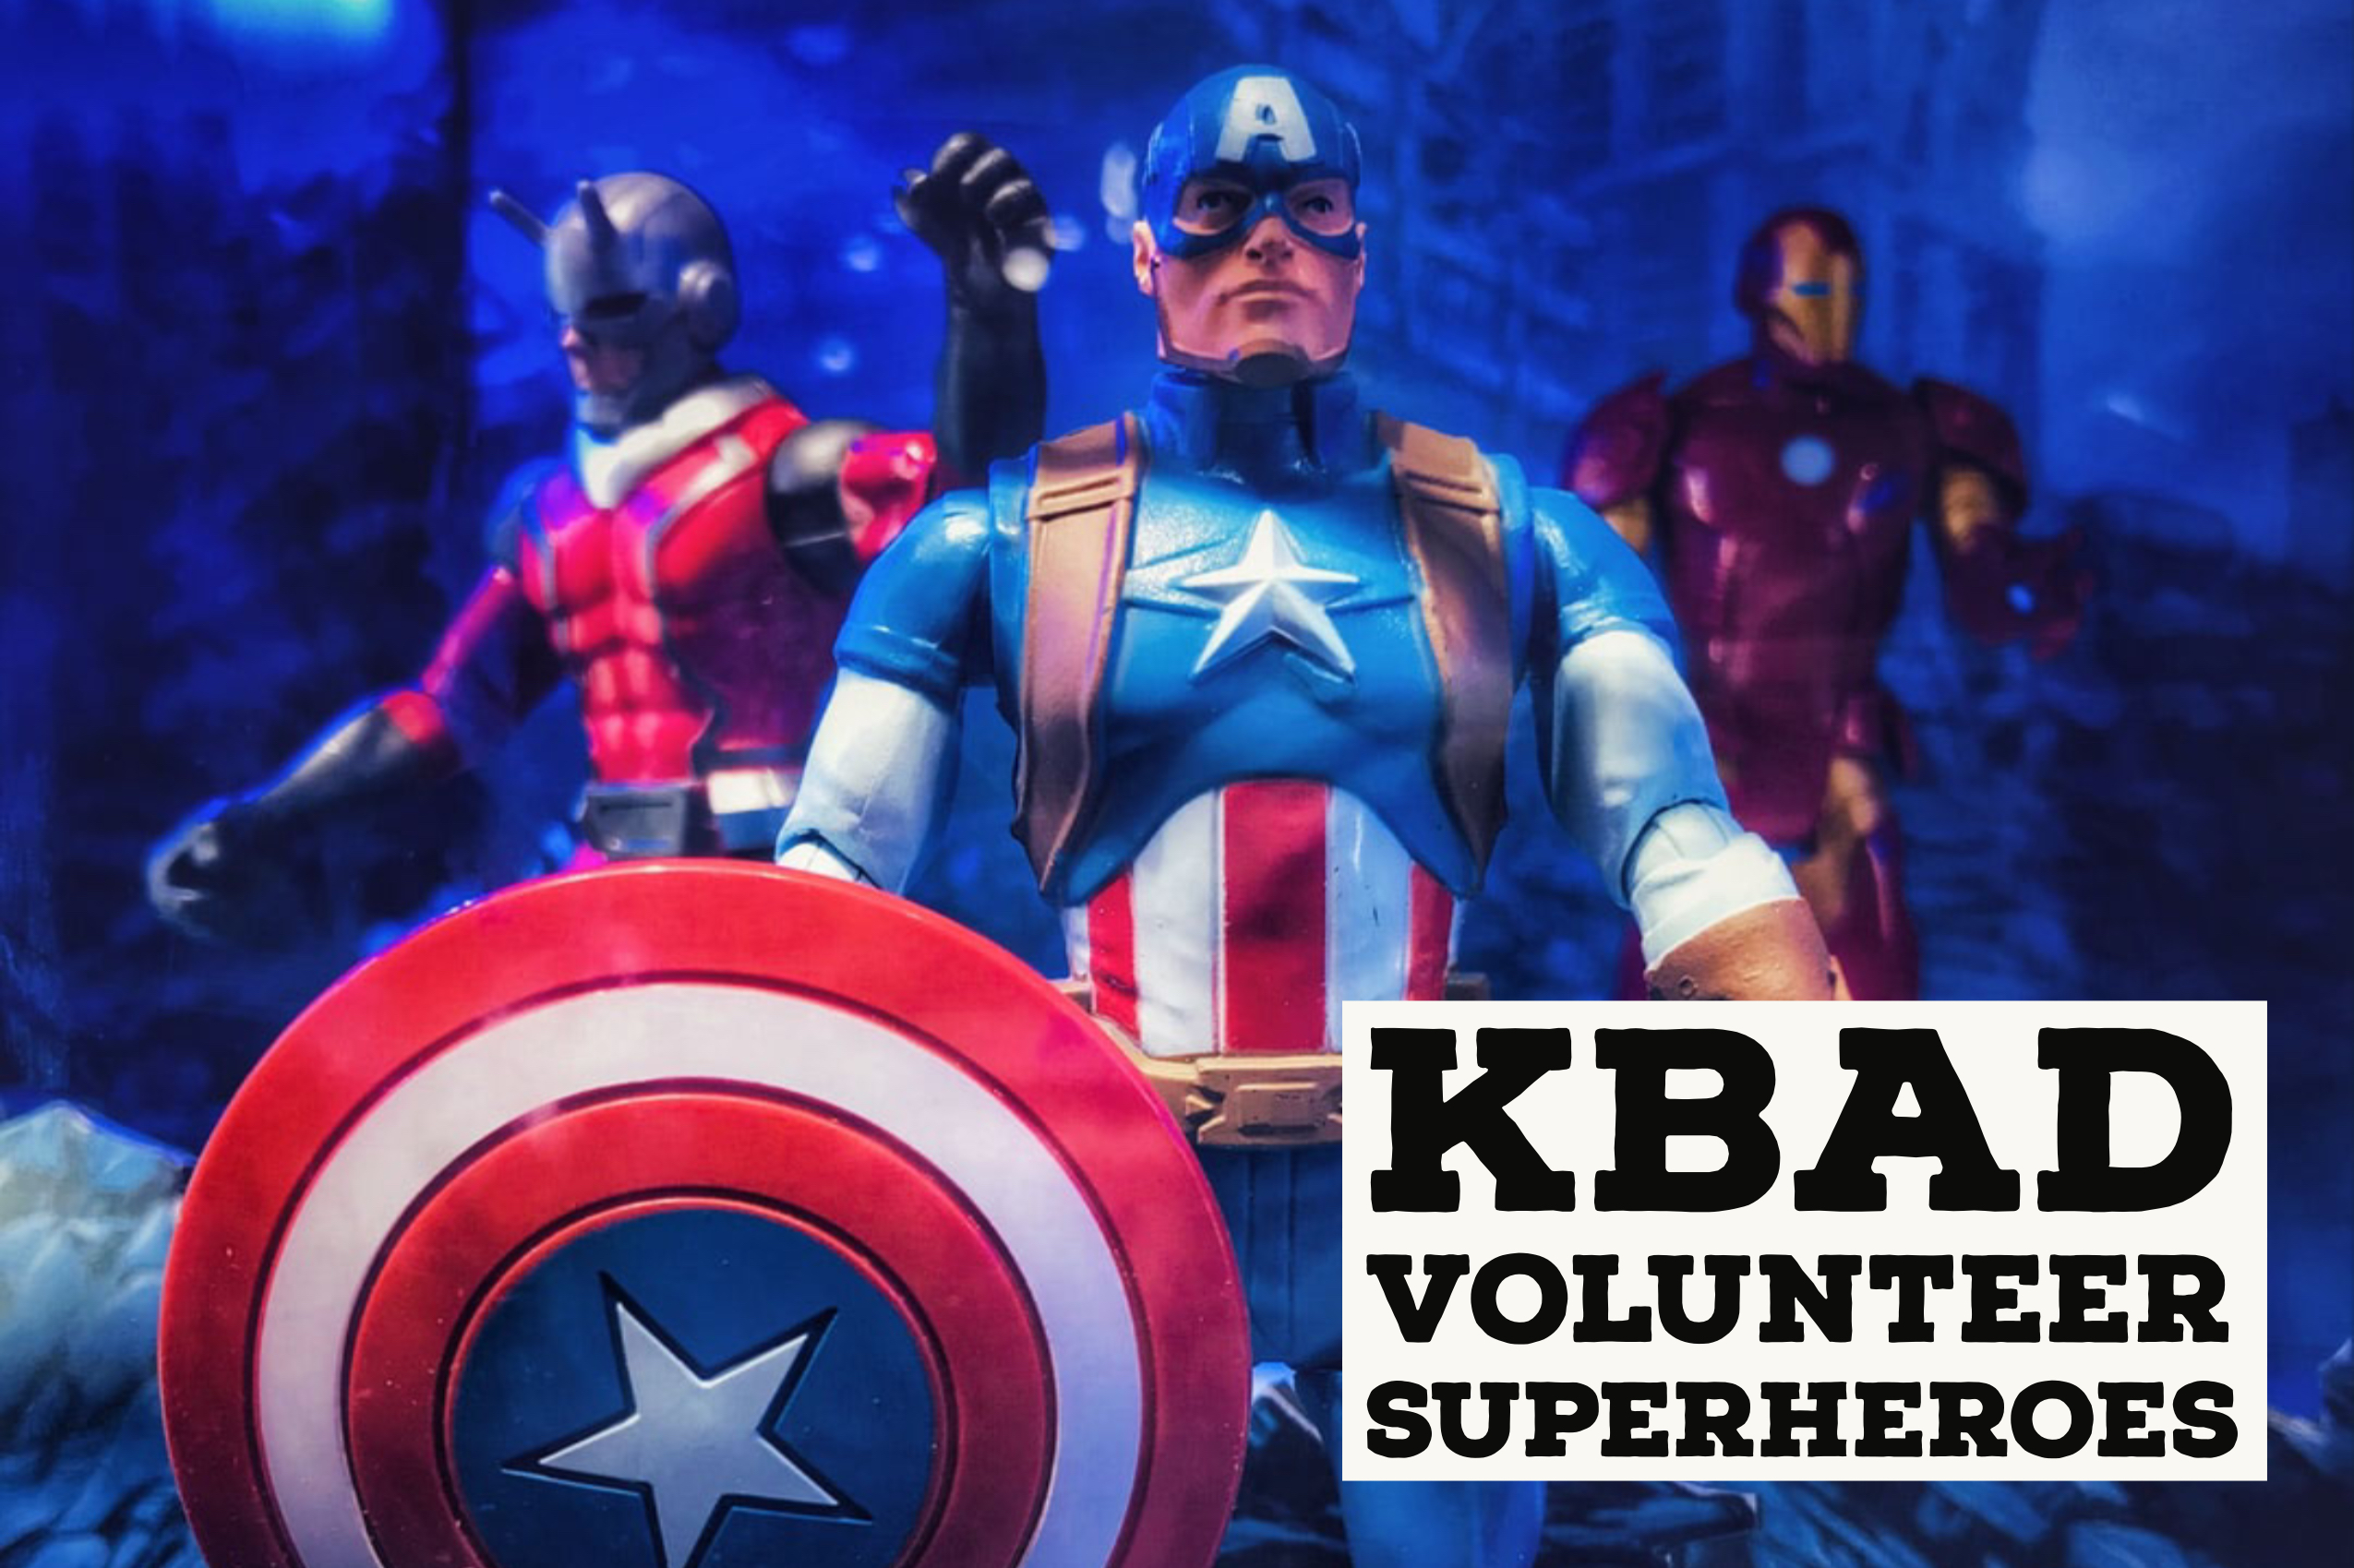 image of superheroes as volunteers